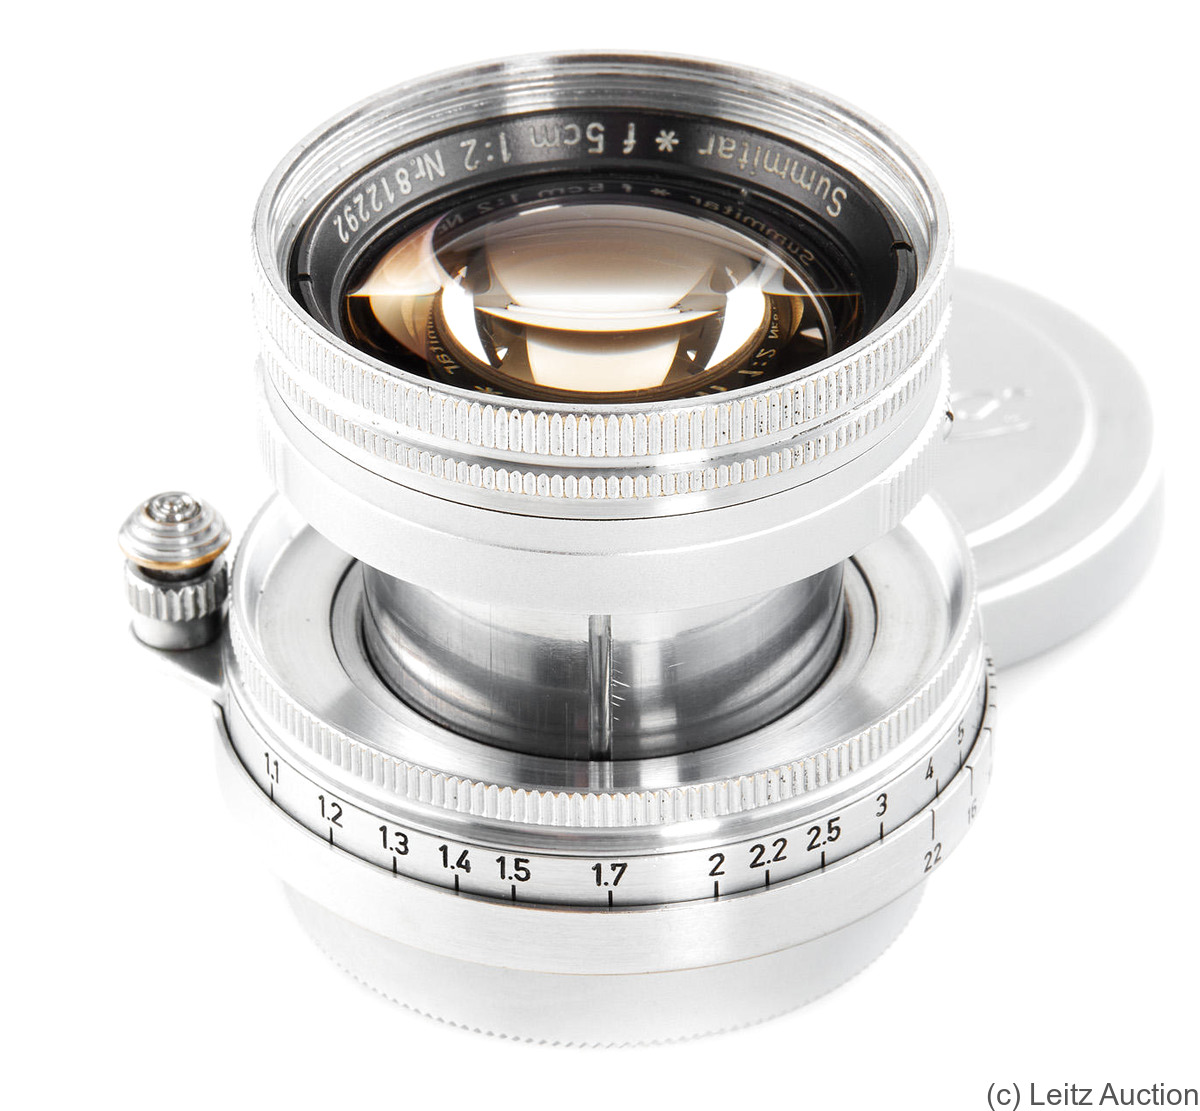 Leitz: 50mm (5cm) f2 Summitar* (SM, Summicron prototype) camera